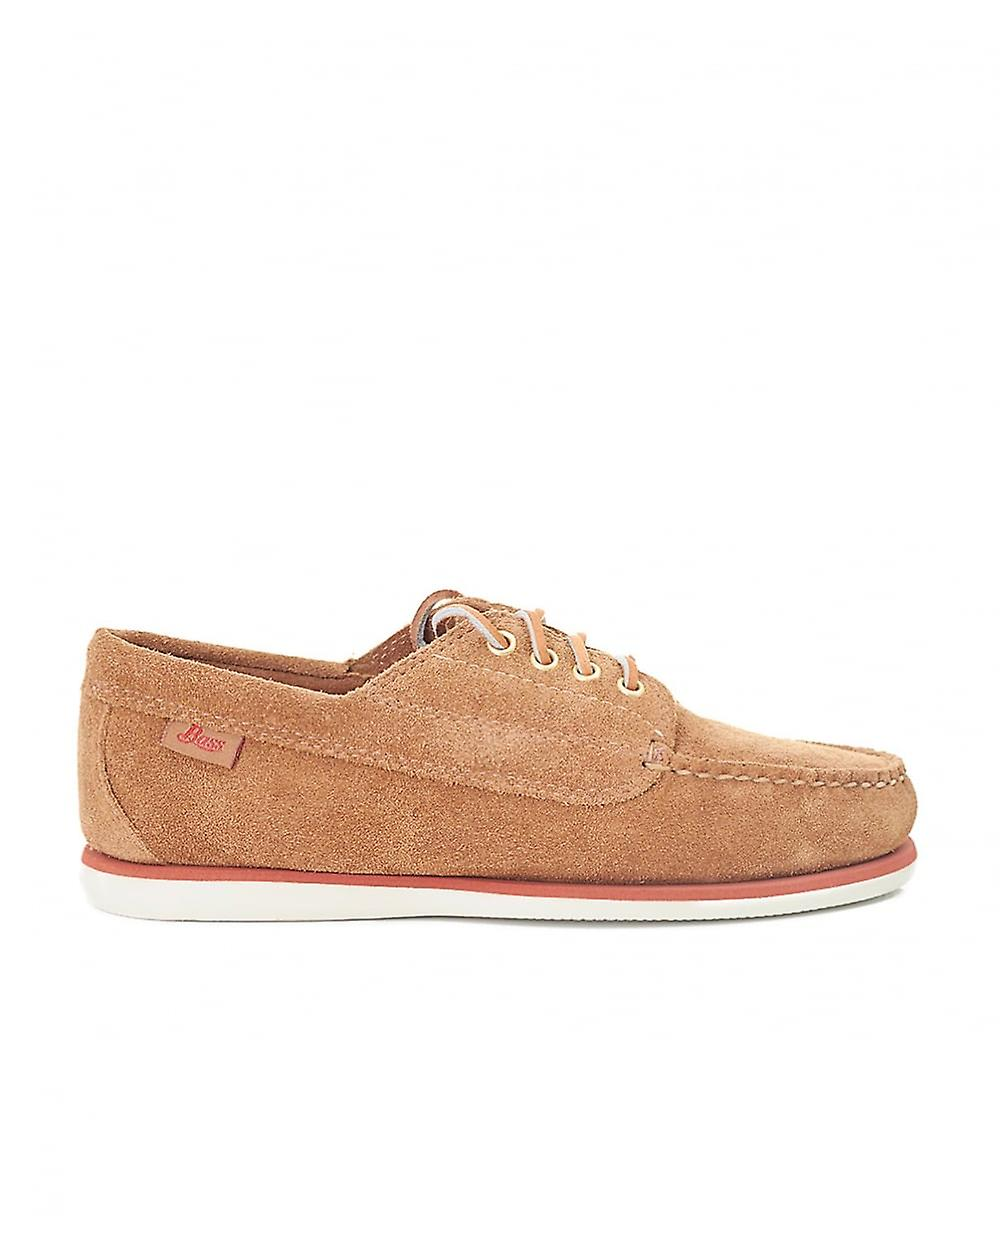 Bass Weejuns Jackman Moc Light Suede Shoes